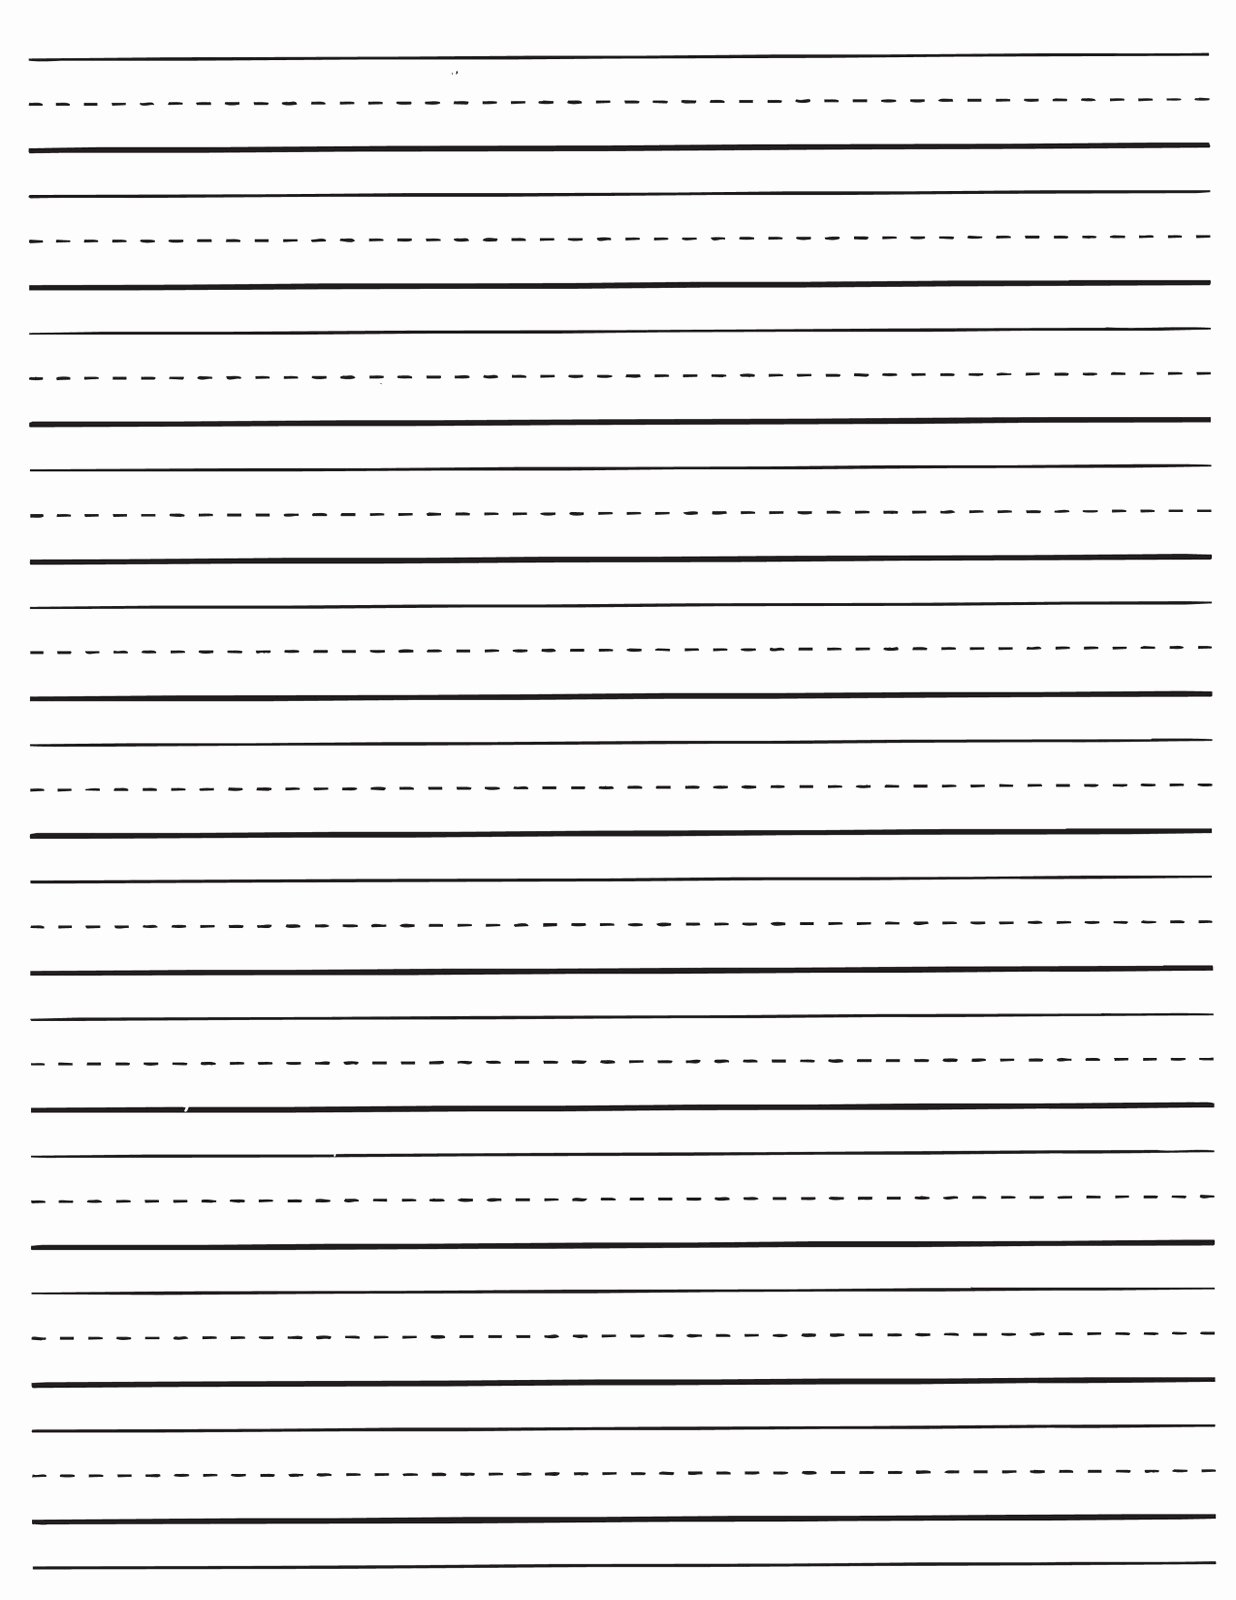 Free Printable Lined Paper Lovely Free Printable Lined Handwriting Paper Printable Pages